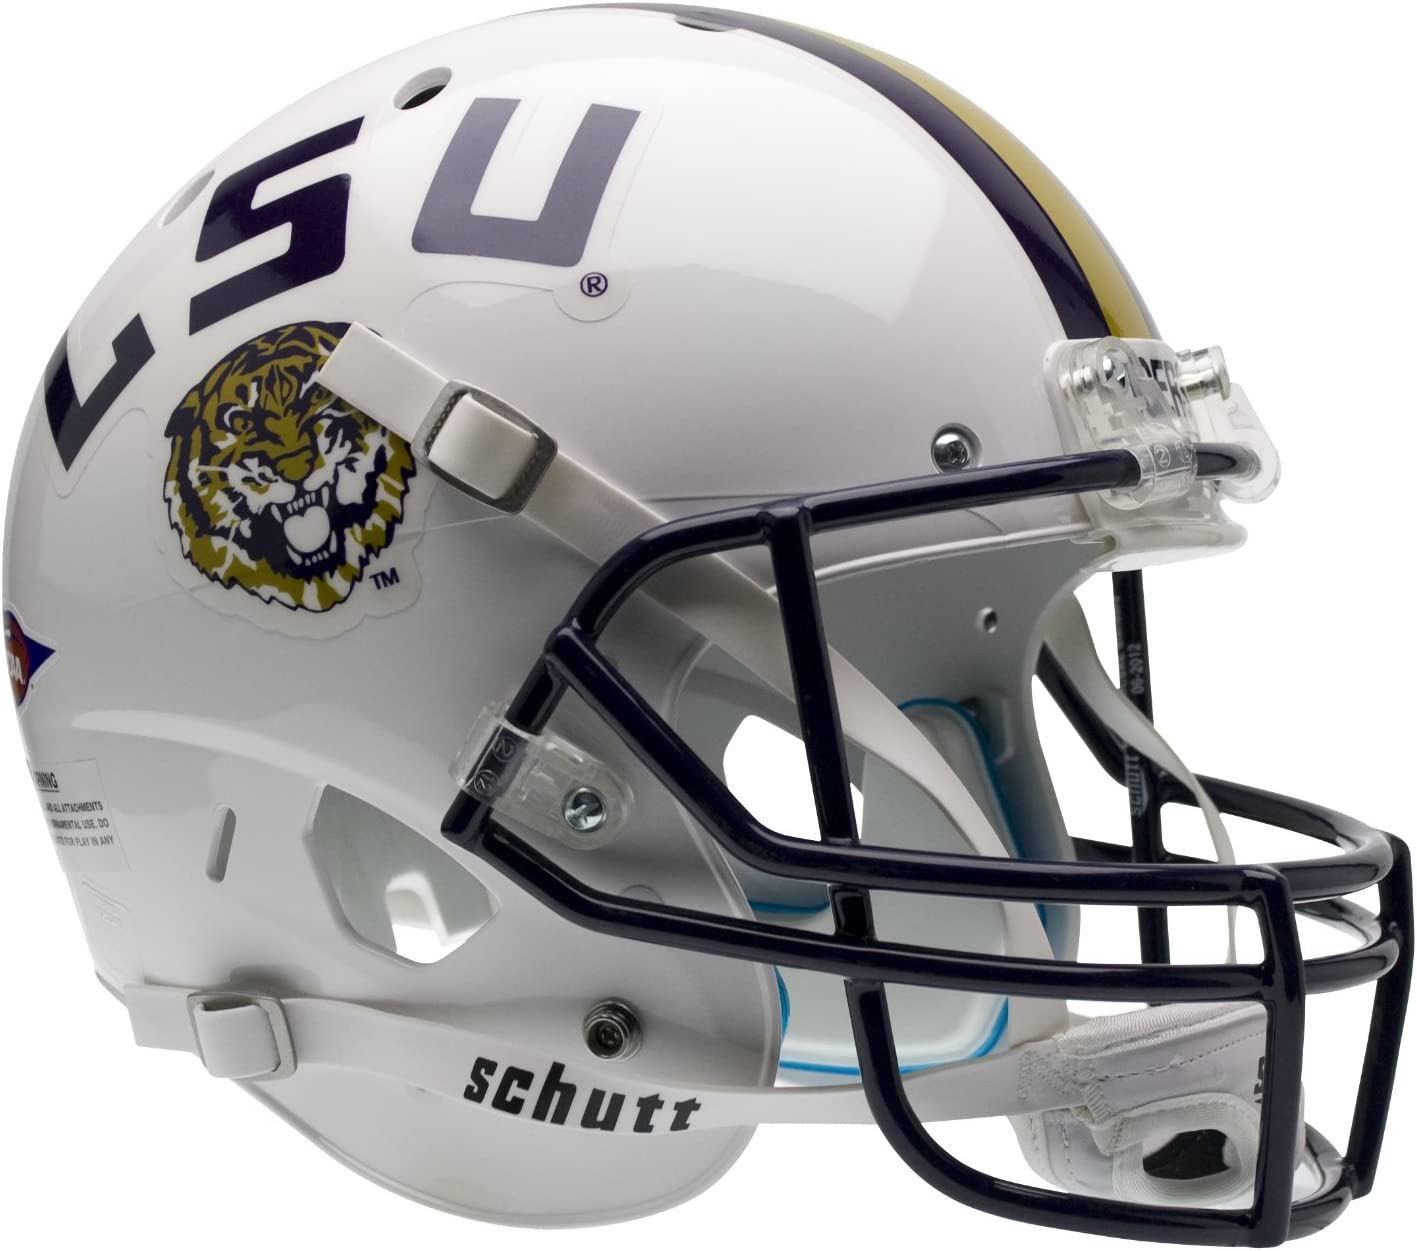 NCAA LSU Tigers Replica XP Helmet - Alternate 2 (White) : Sports Related Collectible Mini Helmets : Sports & Outdoors